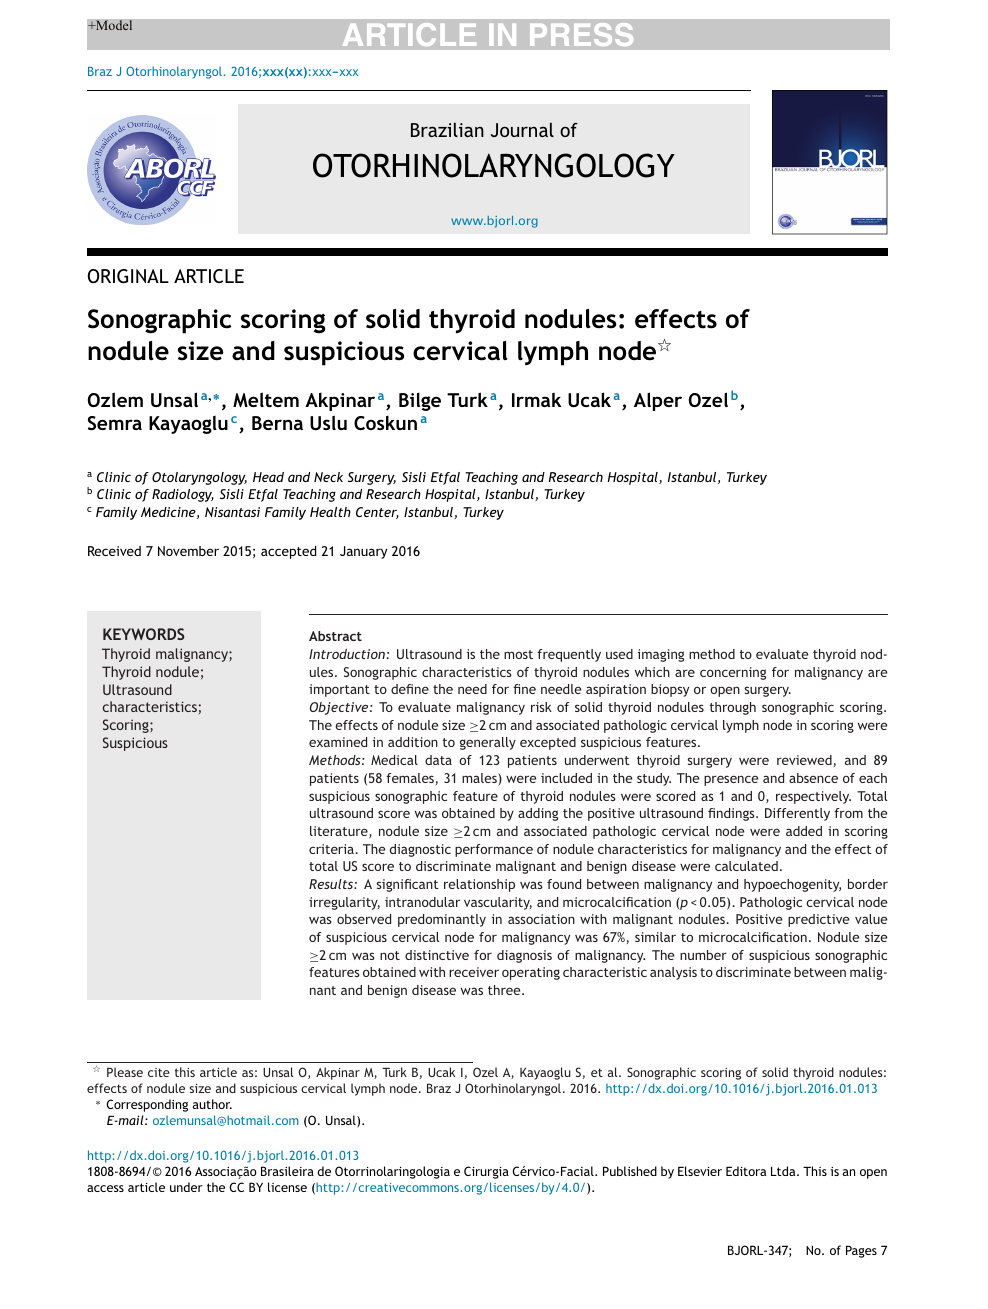 Sonographic Scoring Of Solid Thyroid Nodules Effects Of Nodule